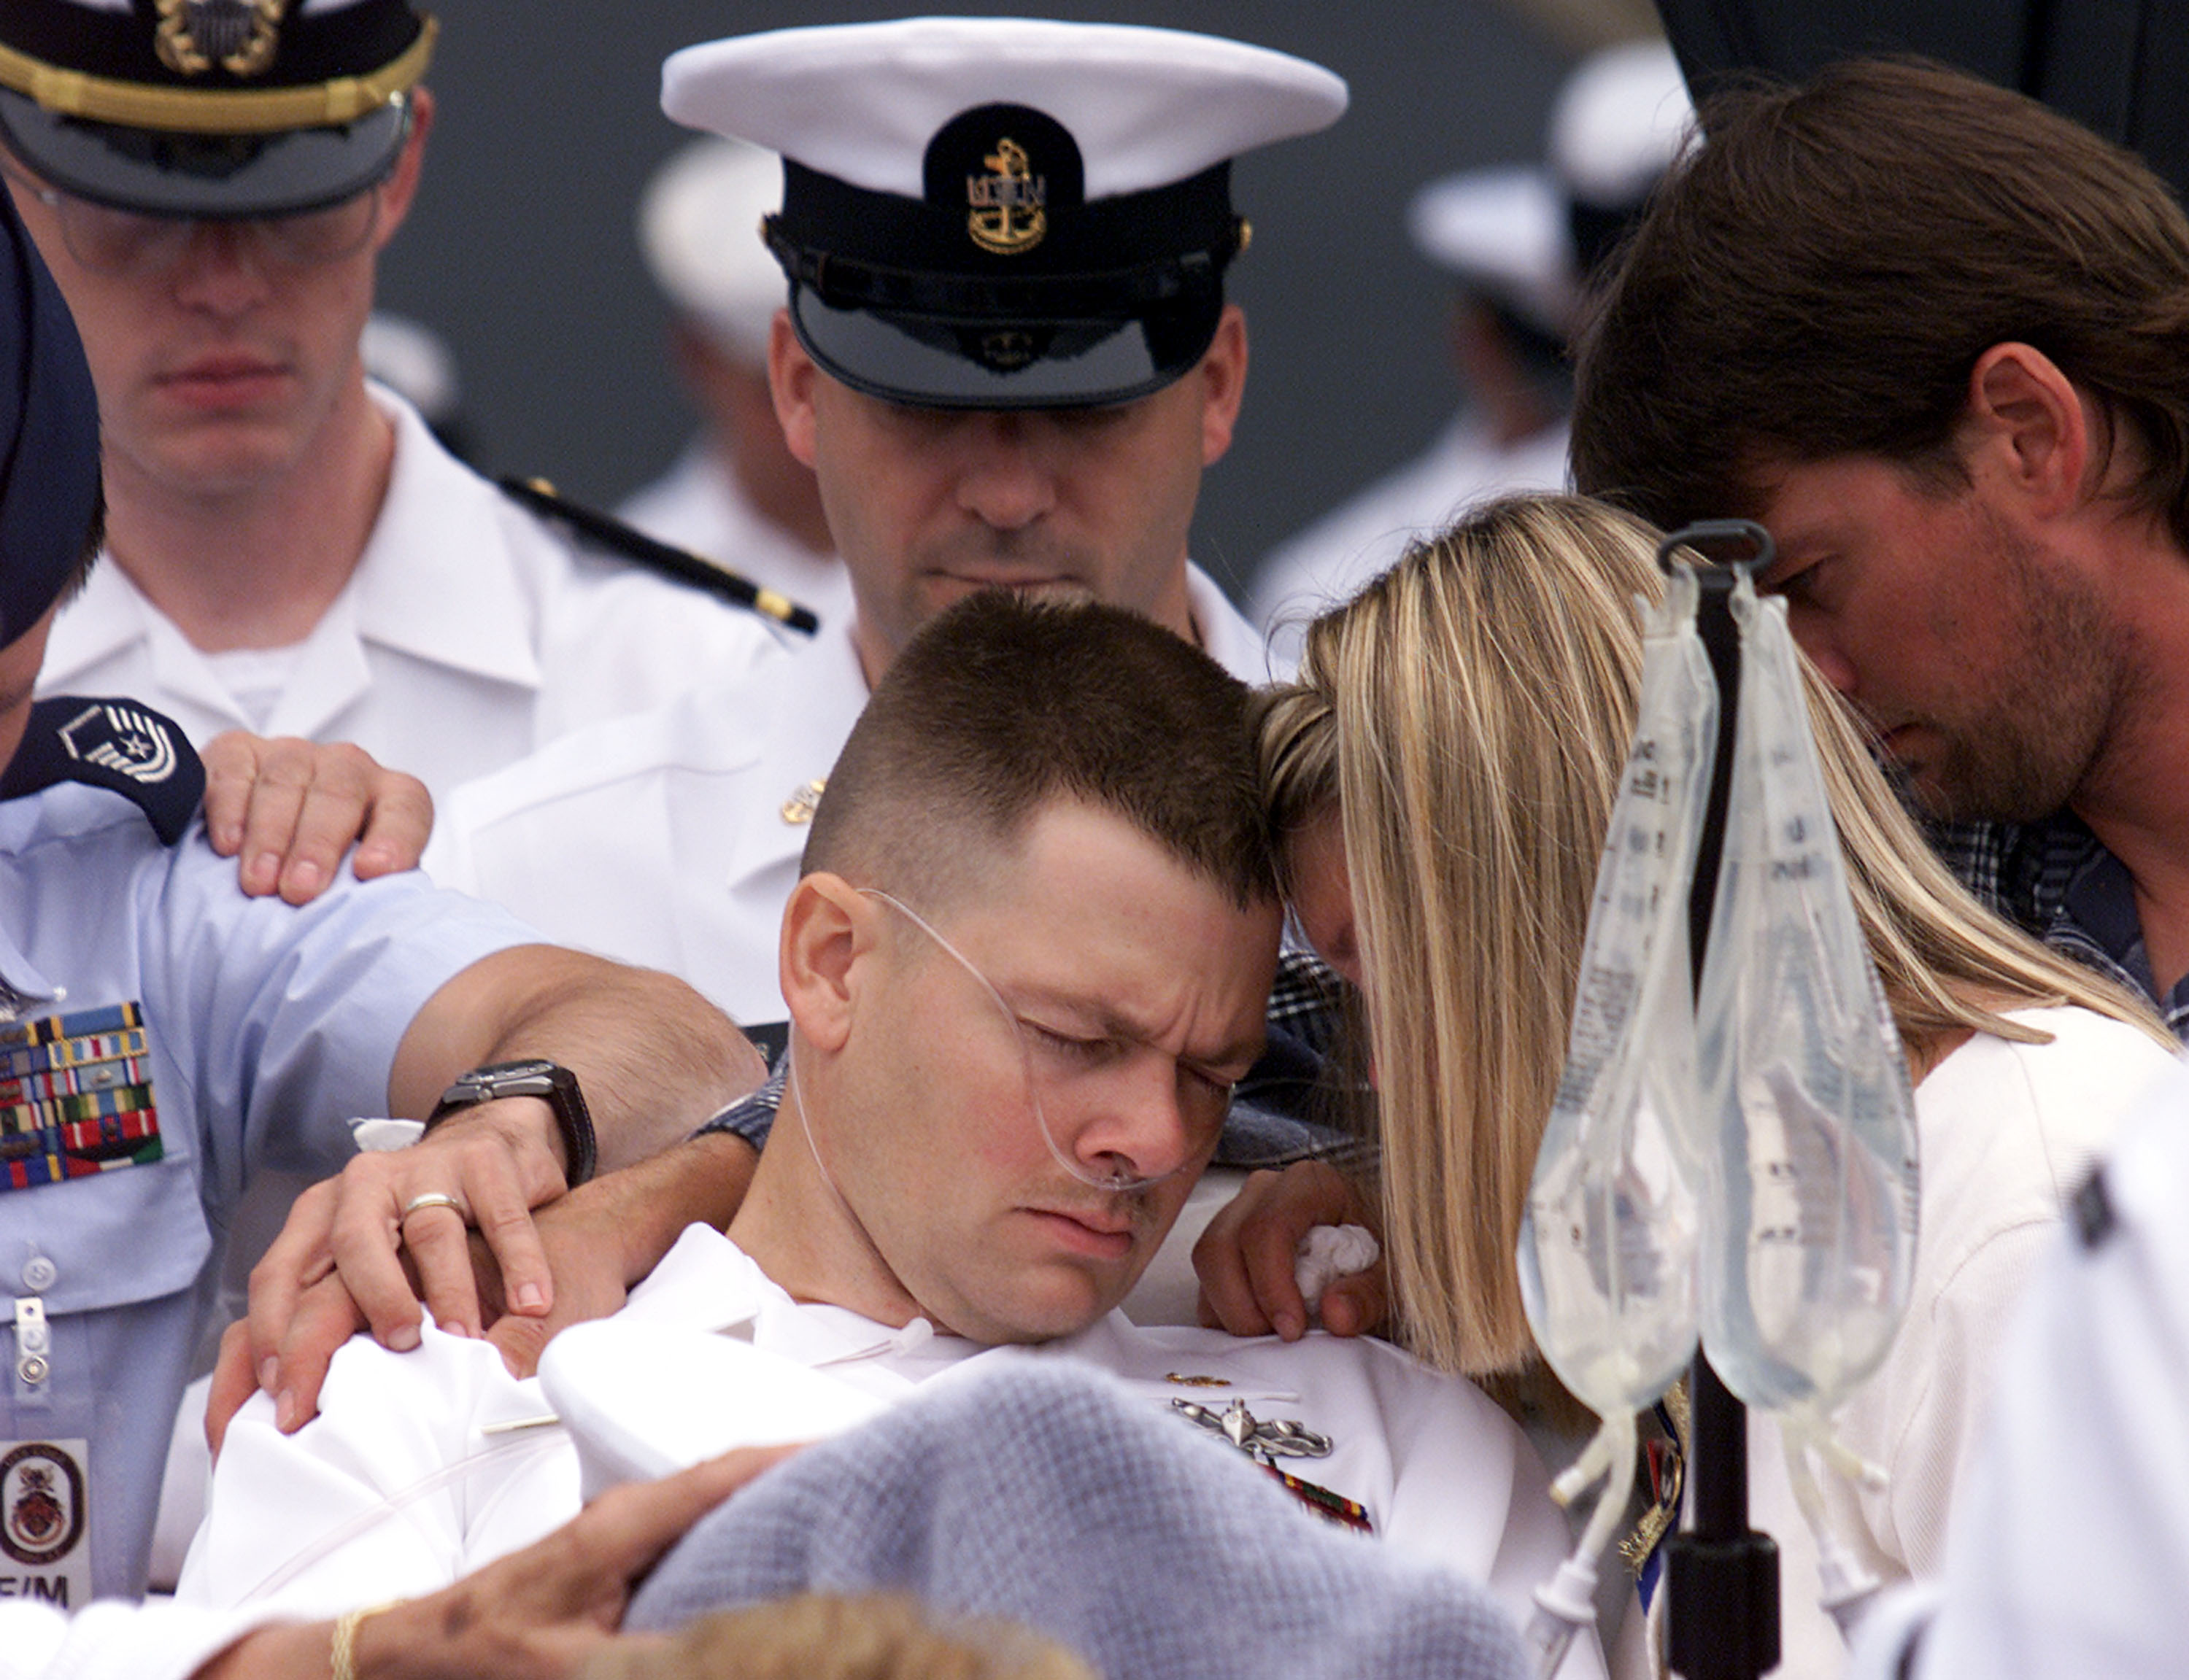 An injured sailor from the USS Cole is comforted by a family member during a memorial service October 18, 2000 in Norfolk VA. President Bill Clinton attended the service that honored the wounded and dead from the U.S. navy destroyer that was bombed while on a refueling stop in the Yemeni port of Aden. (Photo by Mark Wilson/Getty)